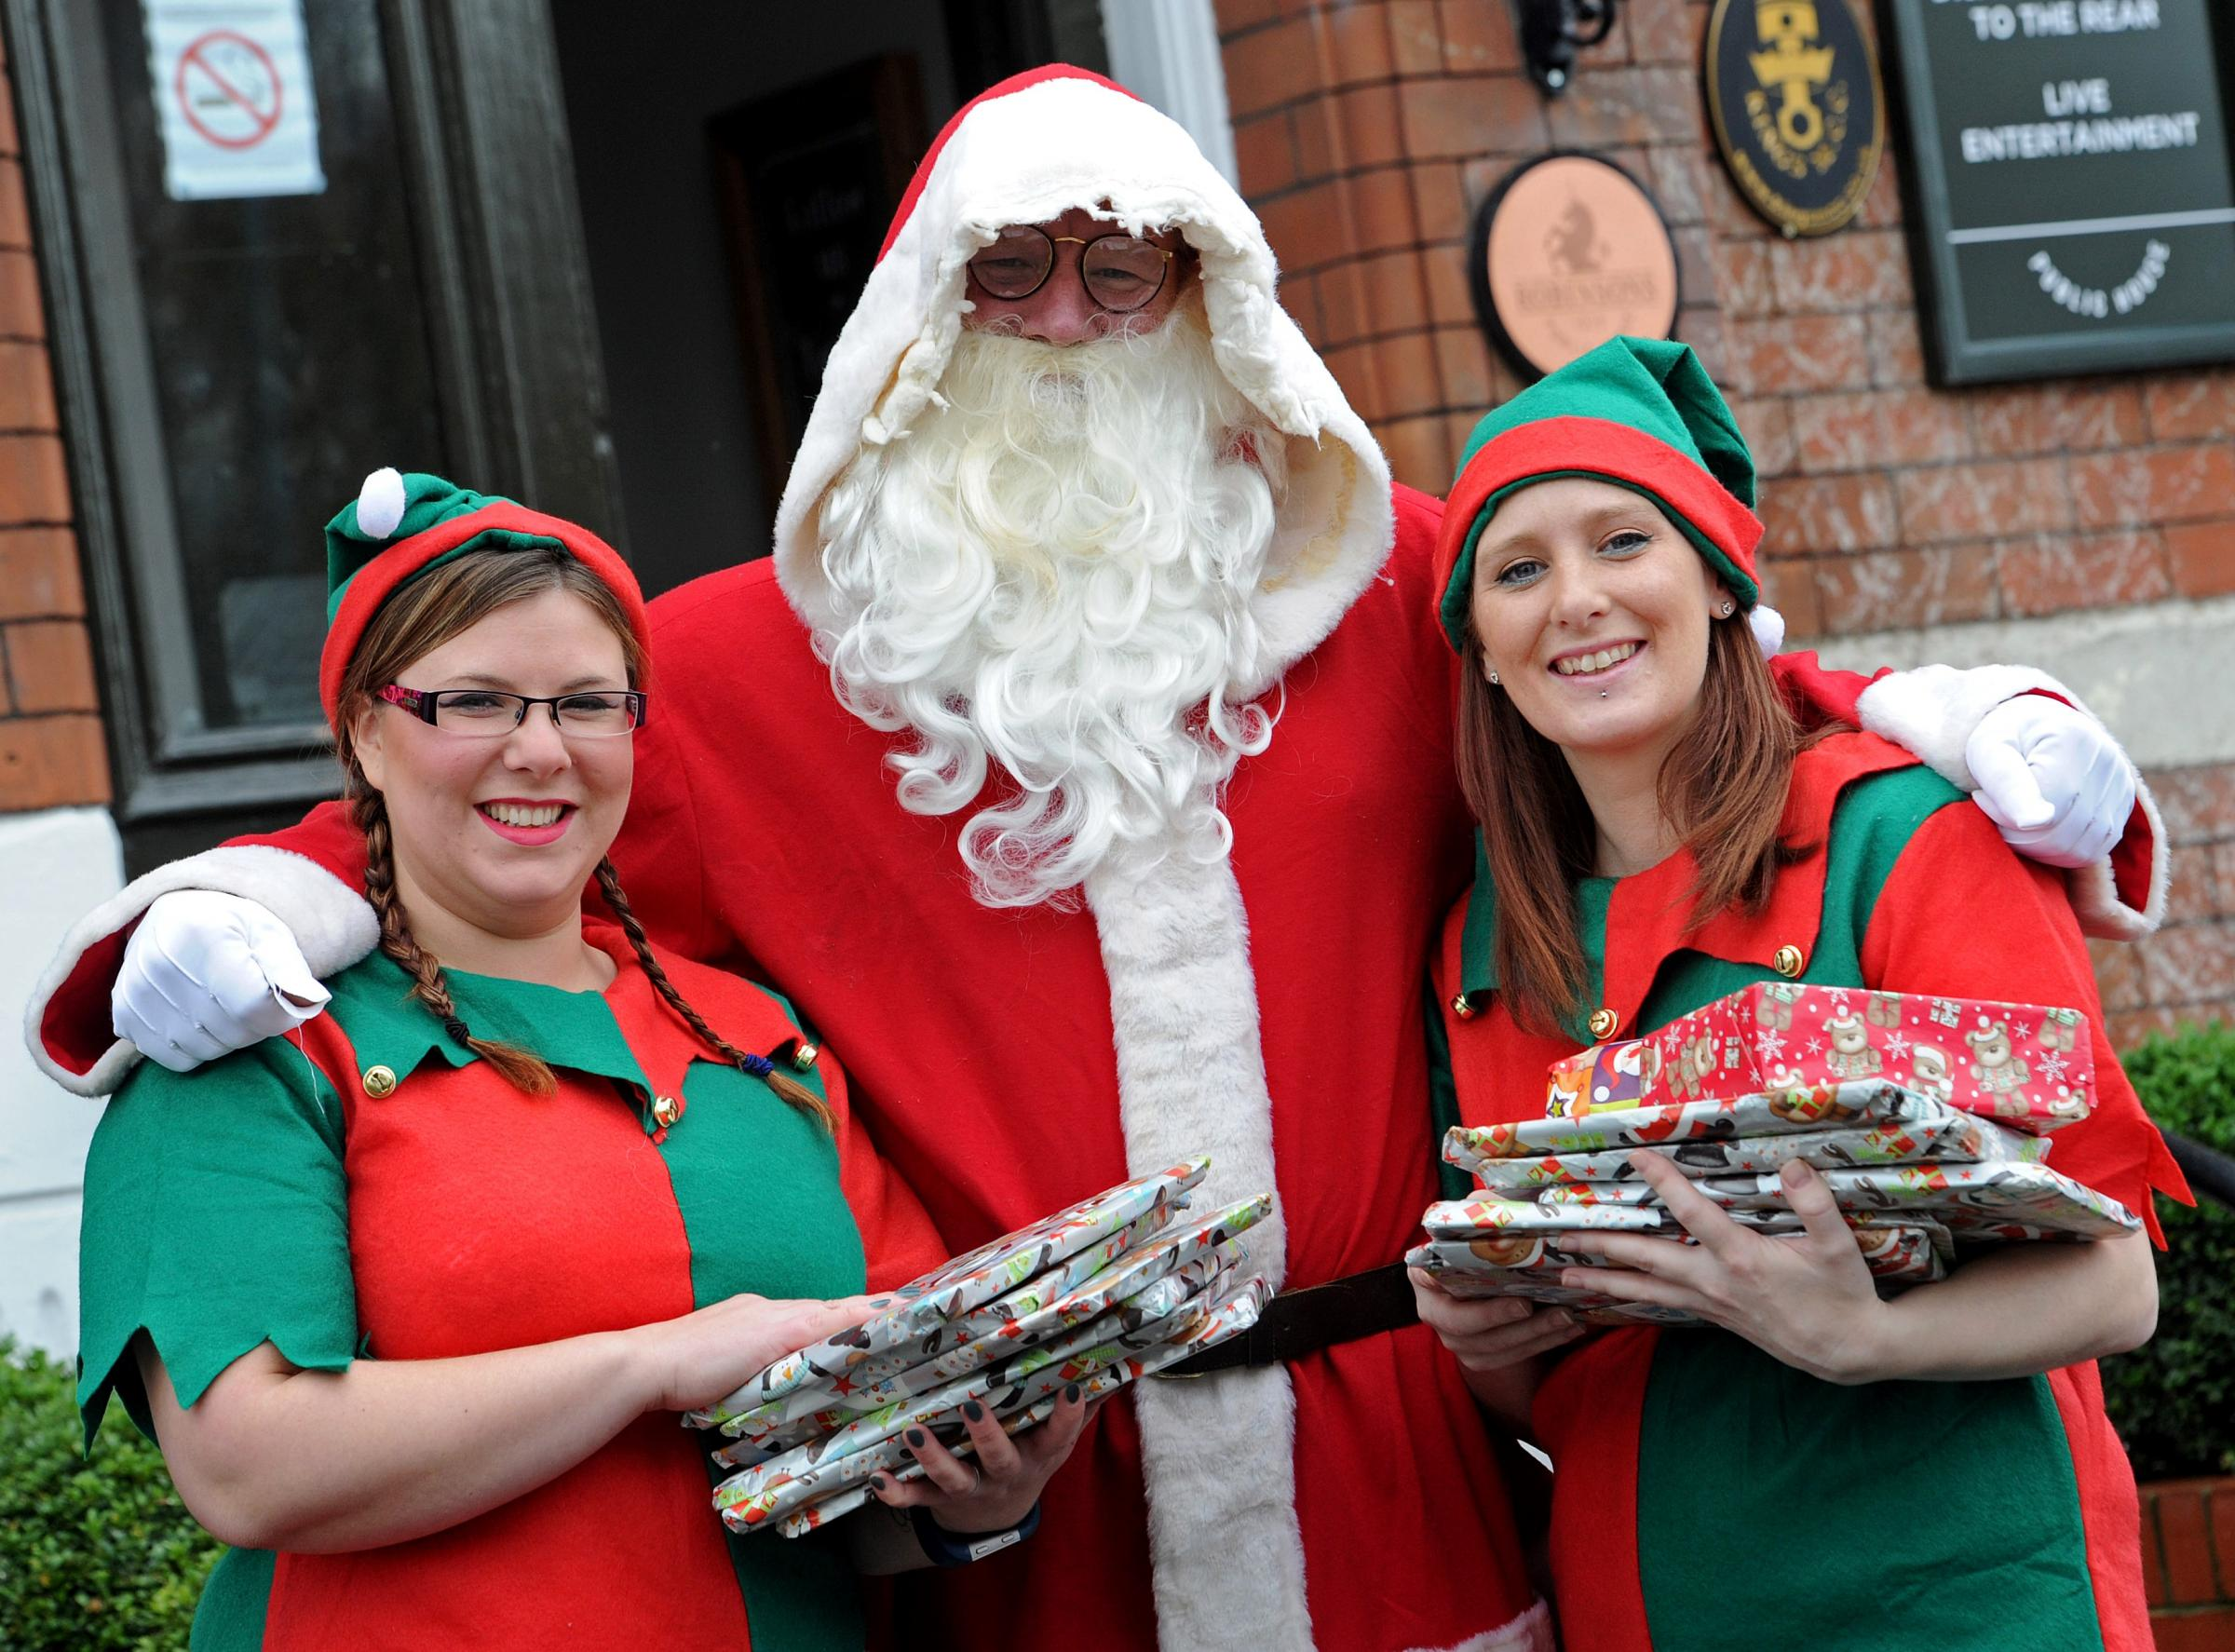 Santa and his elves to bring cheer for children at Christmas Eve ...